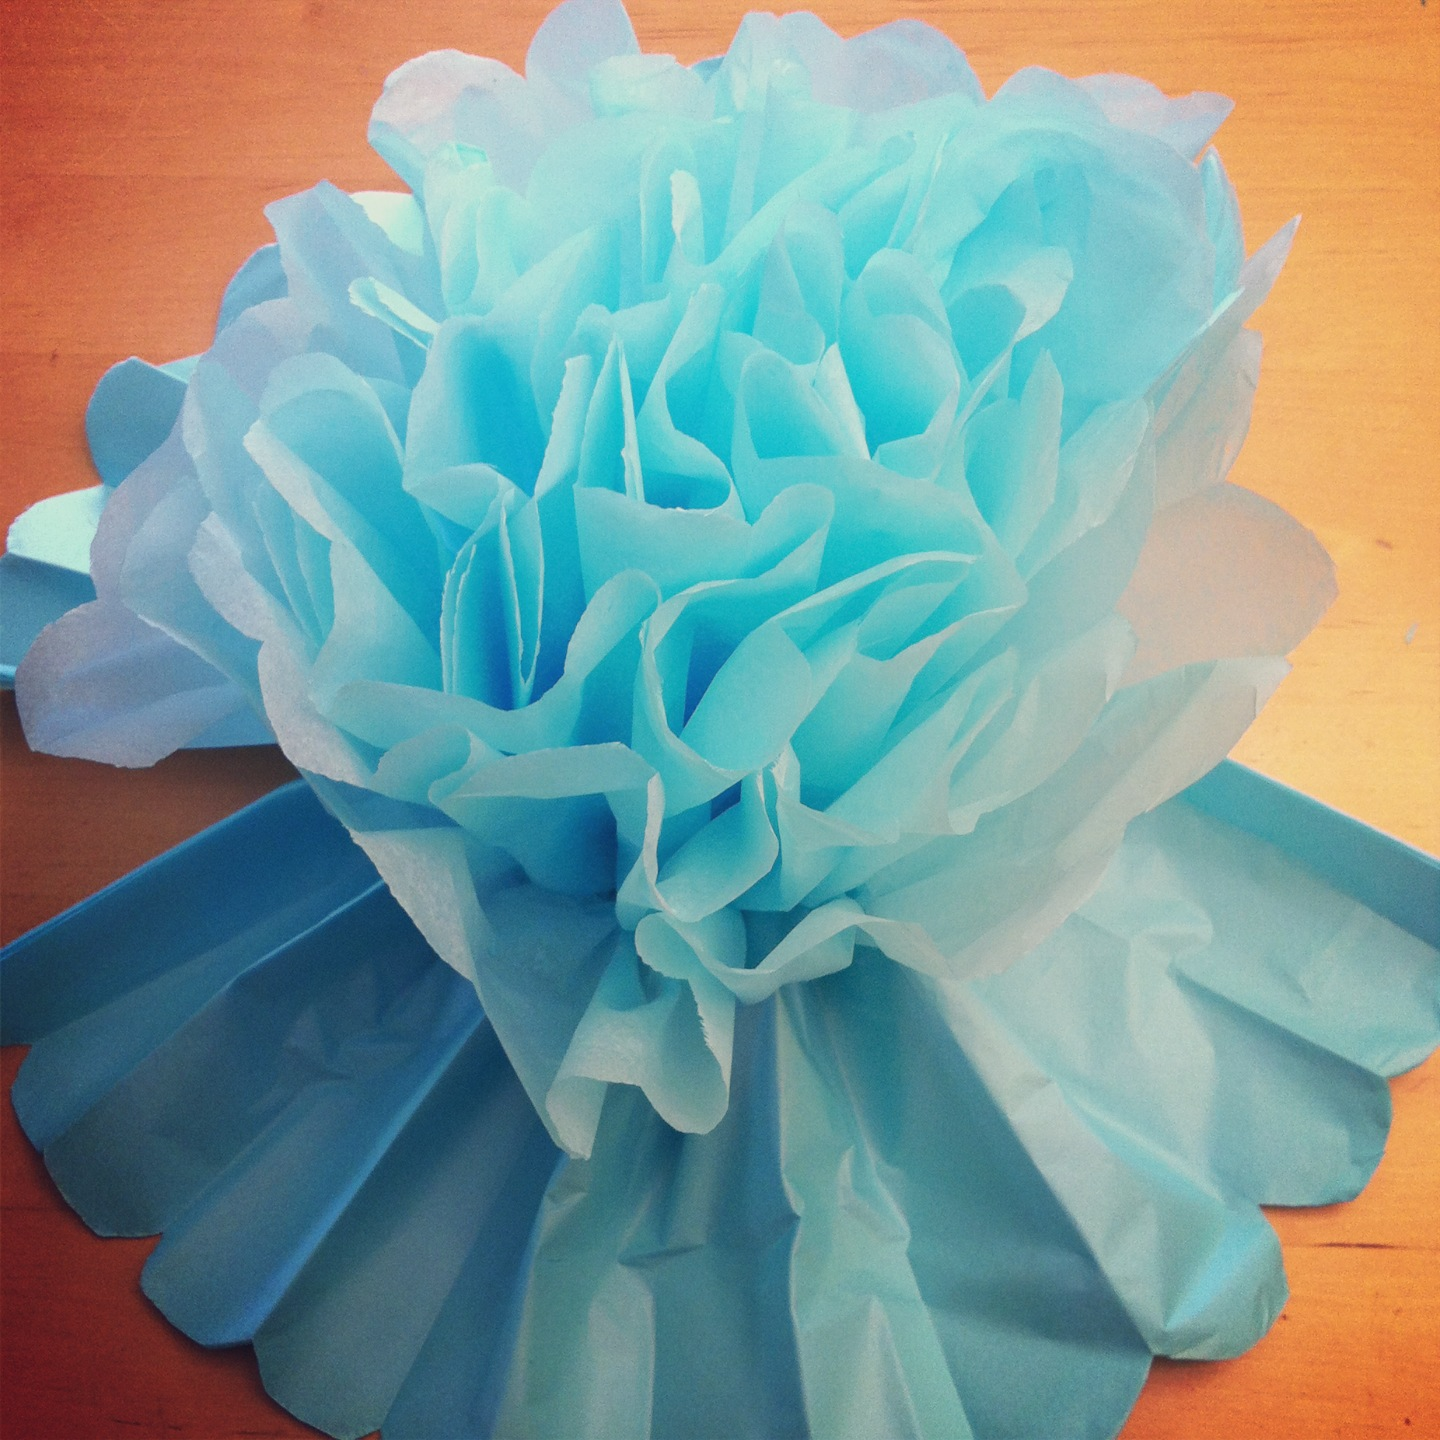 DIY Giant Tissue Paper Flowers Tutorial 2 for $1.00 Make Beautiful Birthday Party Decorations Step 8